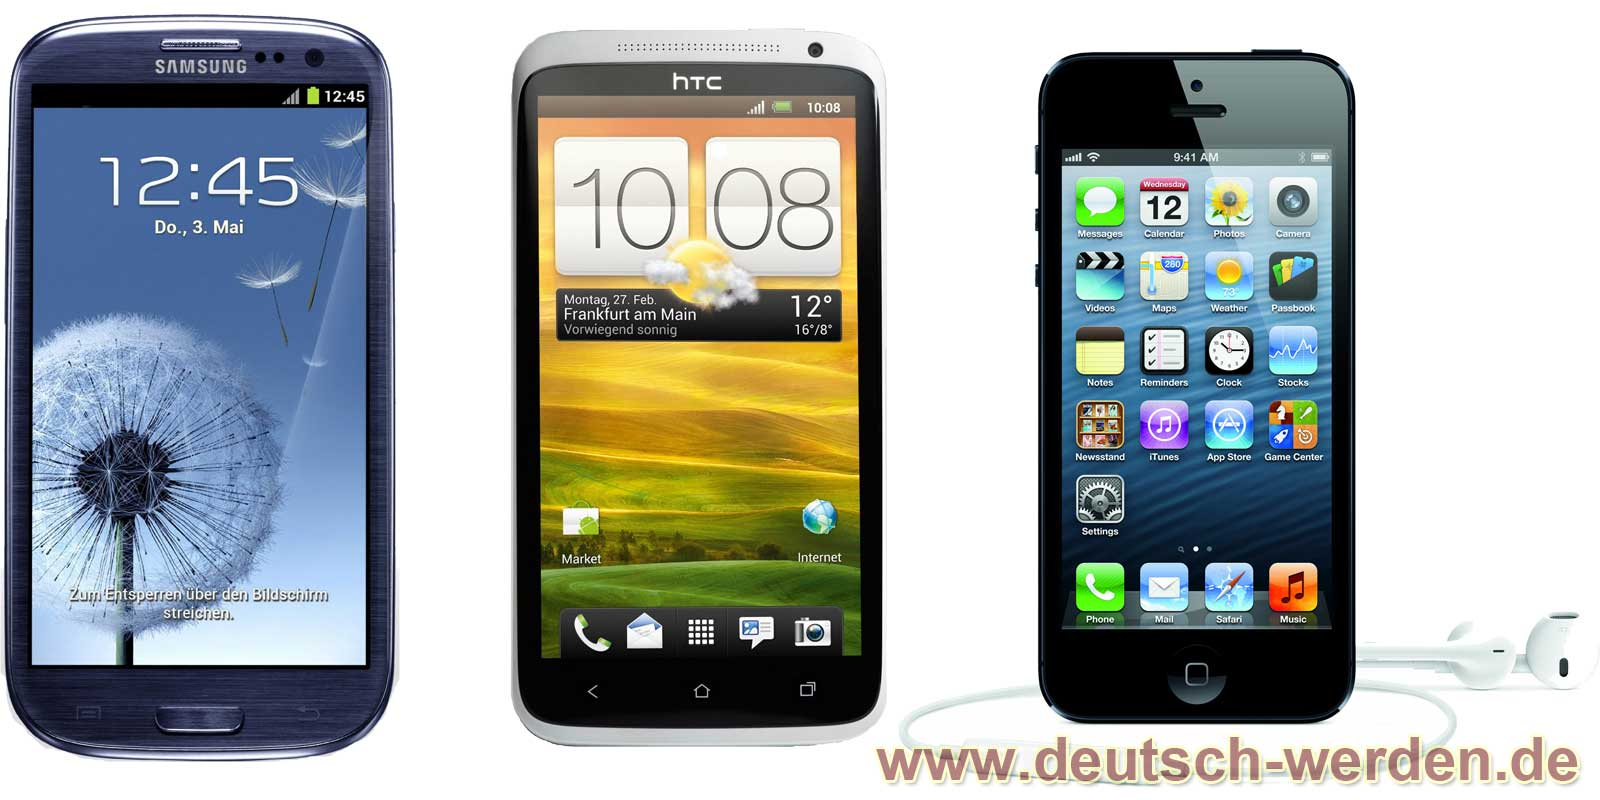 Samsung Galaxy S3 vs. HTC One X vs. Iphone 5